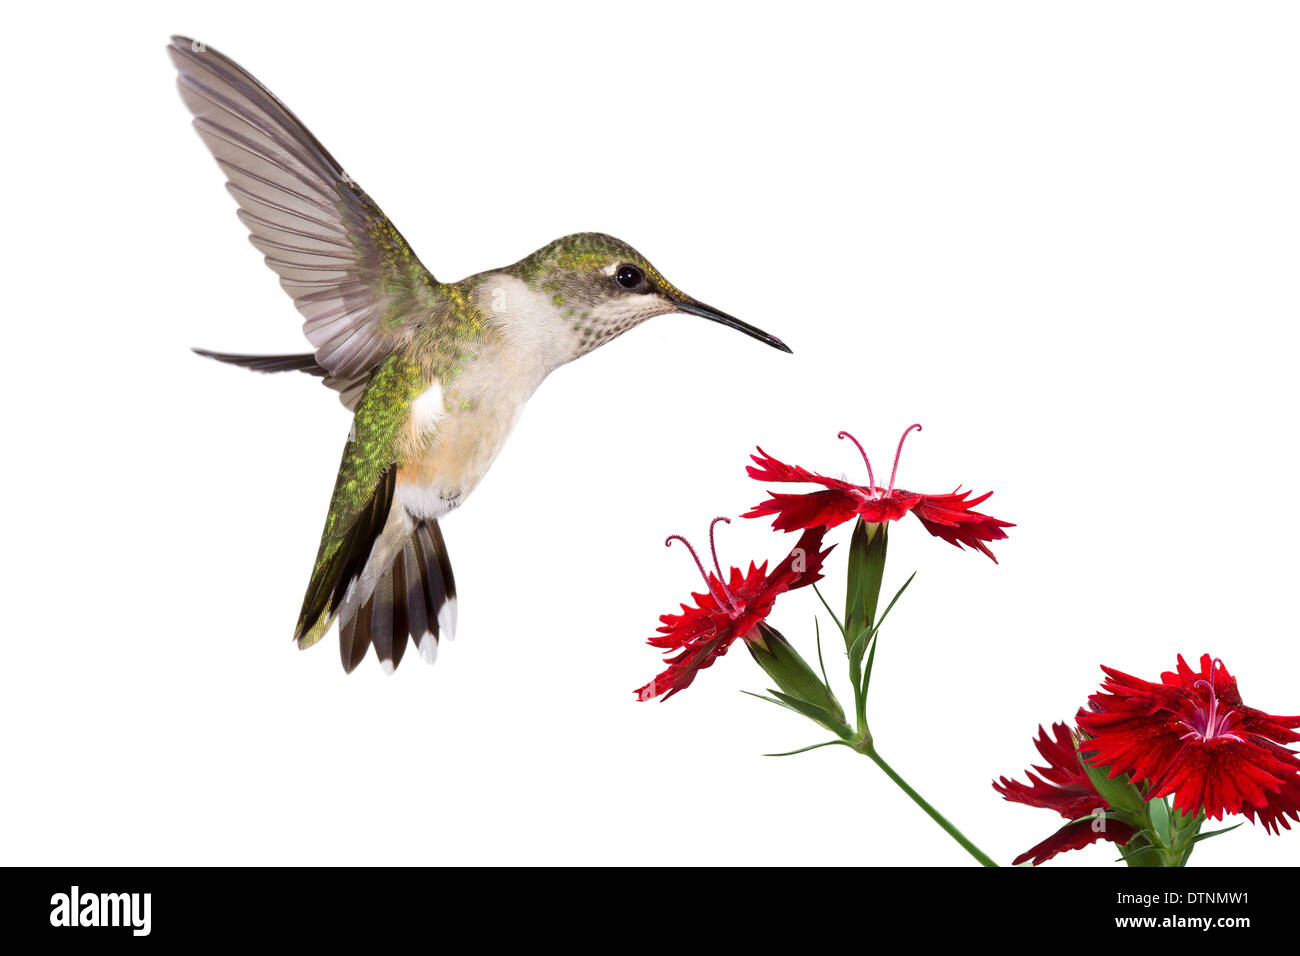 hummingbird with frozen wings and open tail hovering over three red dianthus - Stock Image